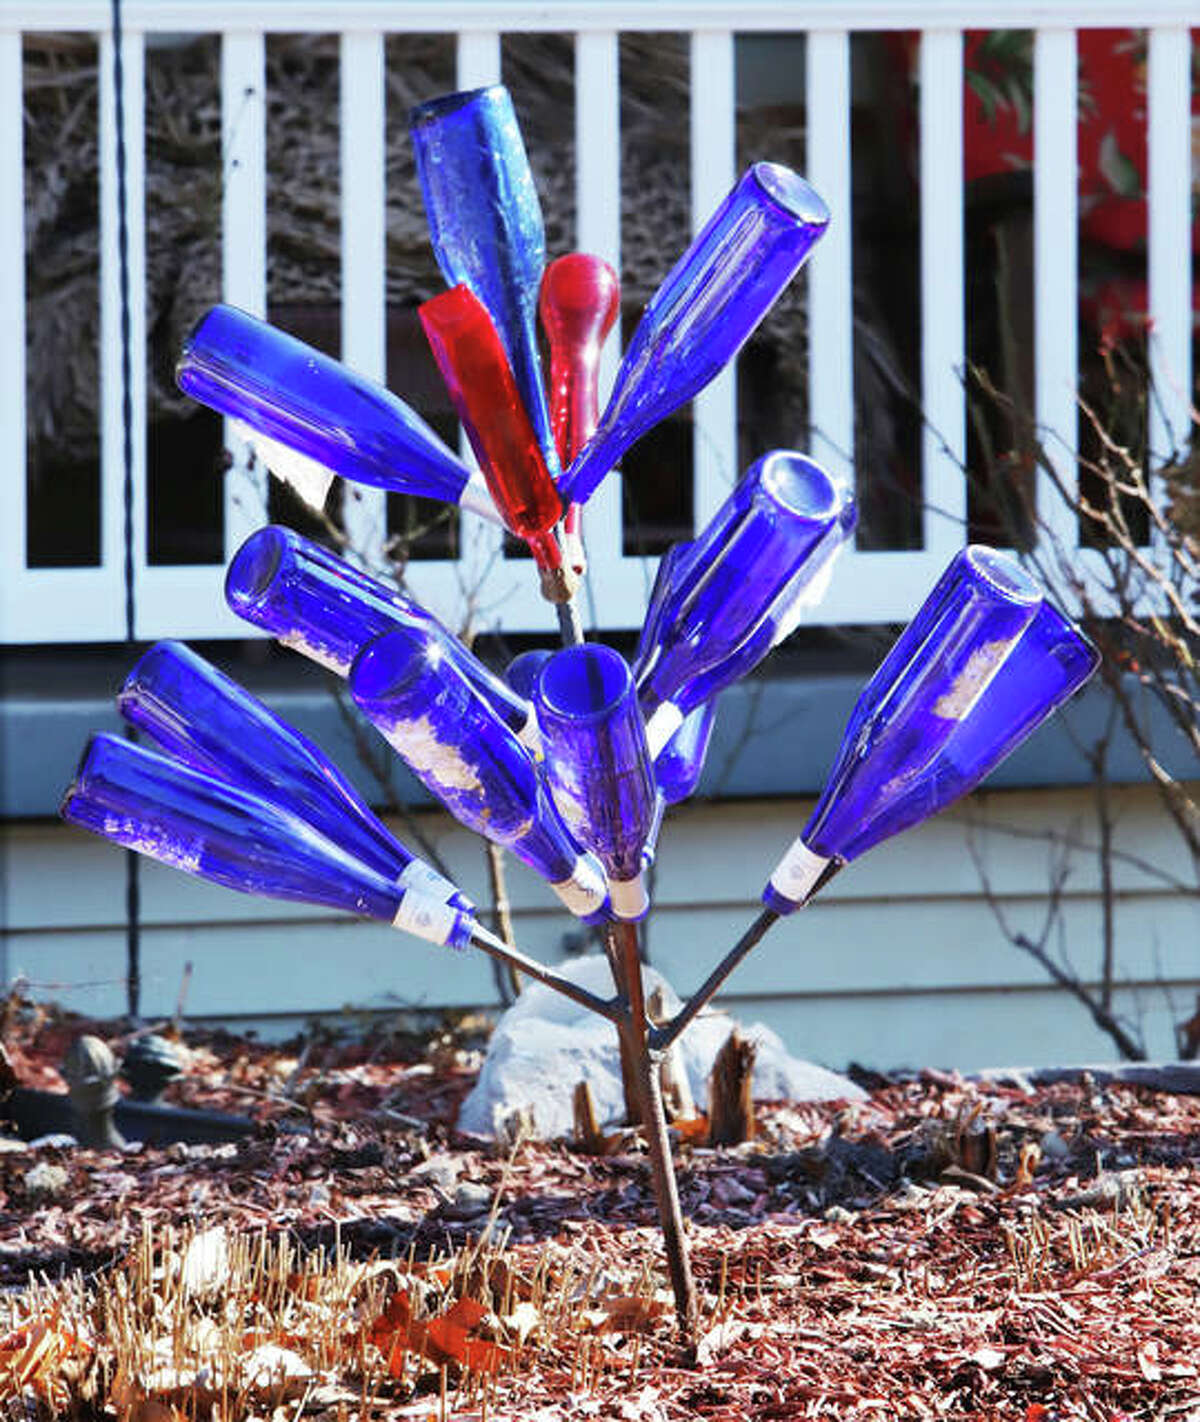 They say art is in the eye of the beholder. This collection of photos is just a few of the things people around the Riverbend area have chosen to place outside their homes. Perhaps one of them is in your own neighborhood.